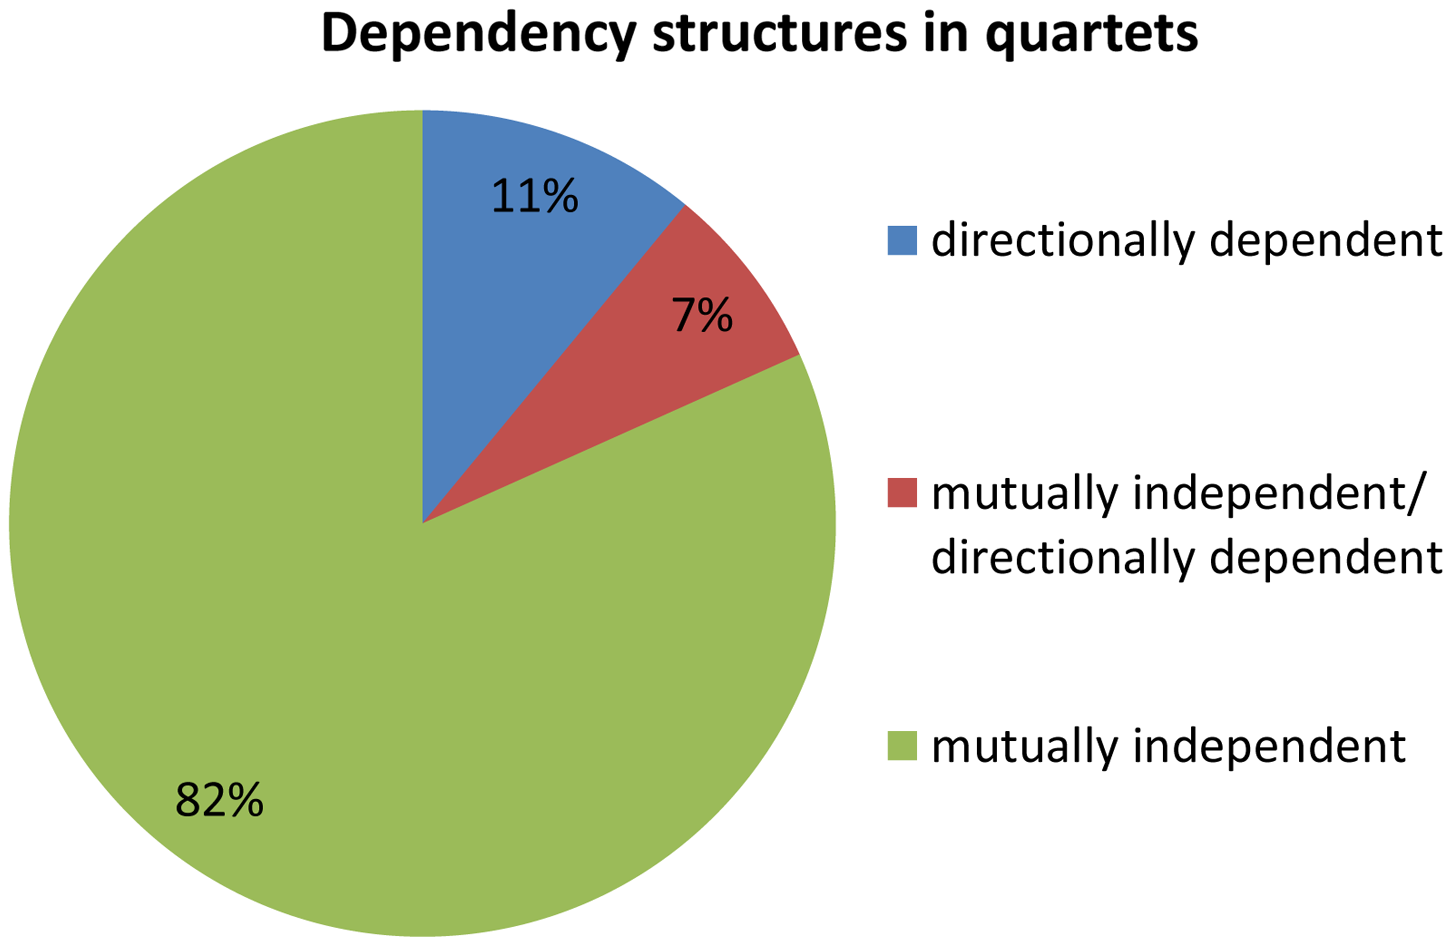 Dependency structures in quartets.